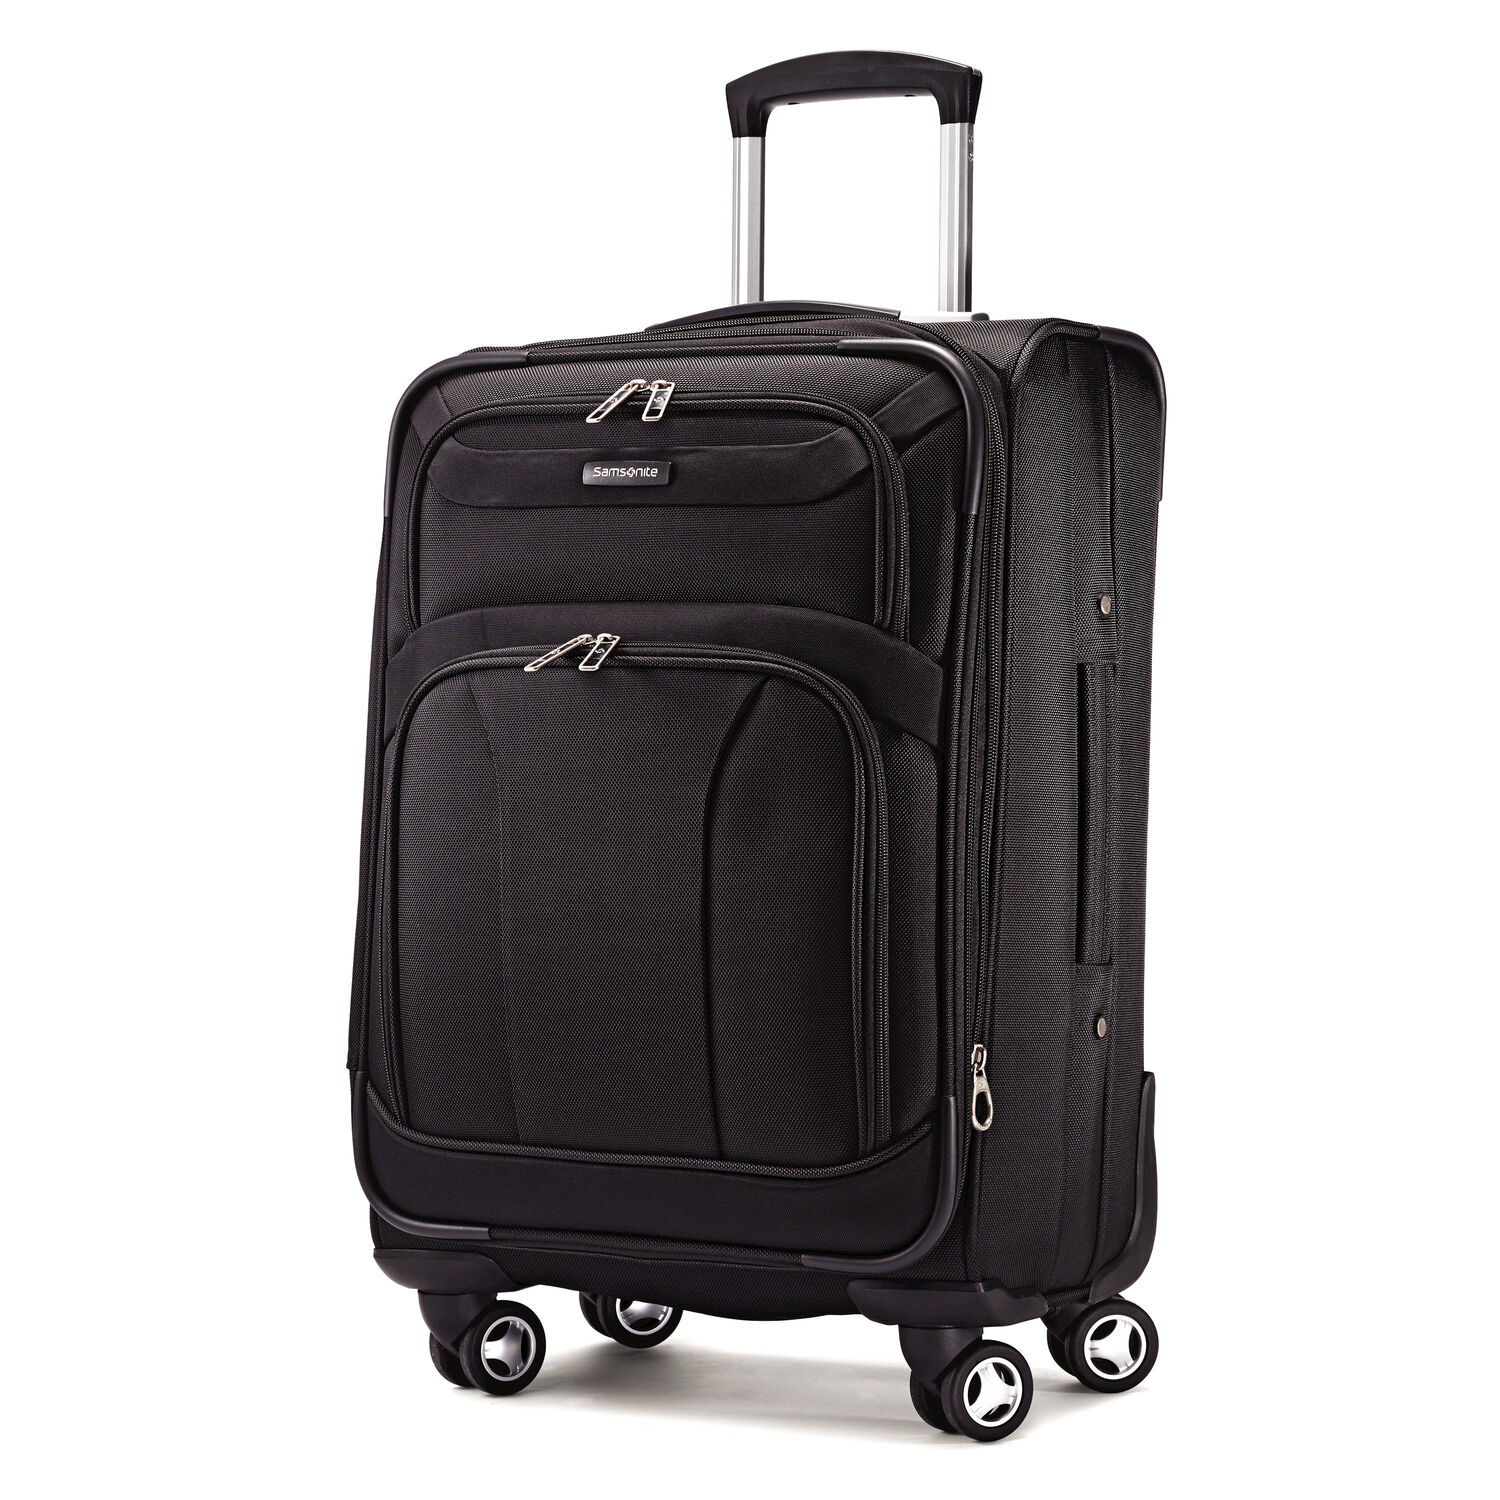 Samsonite Southbridge 21 Quot Spinner